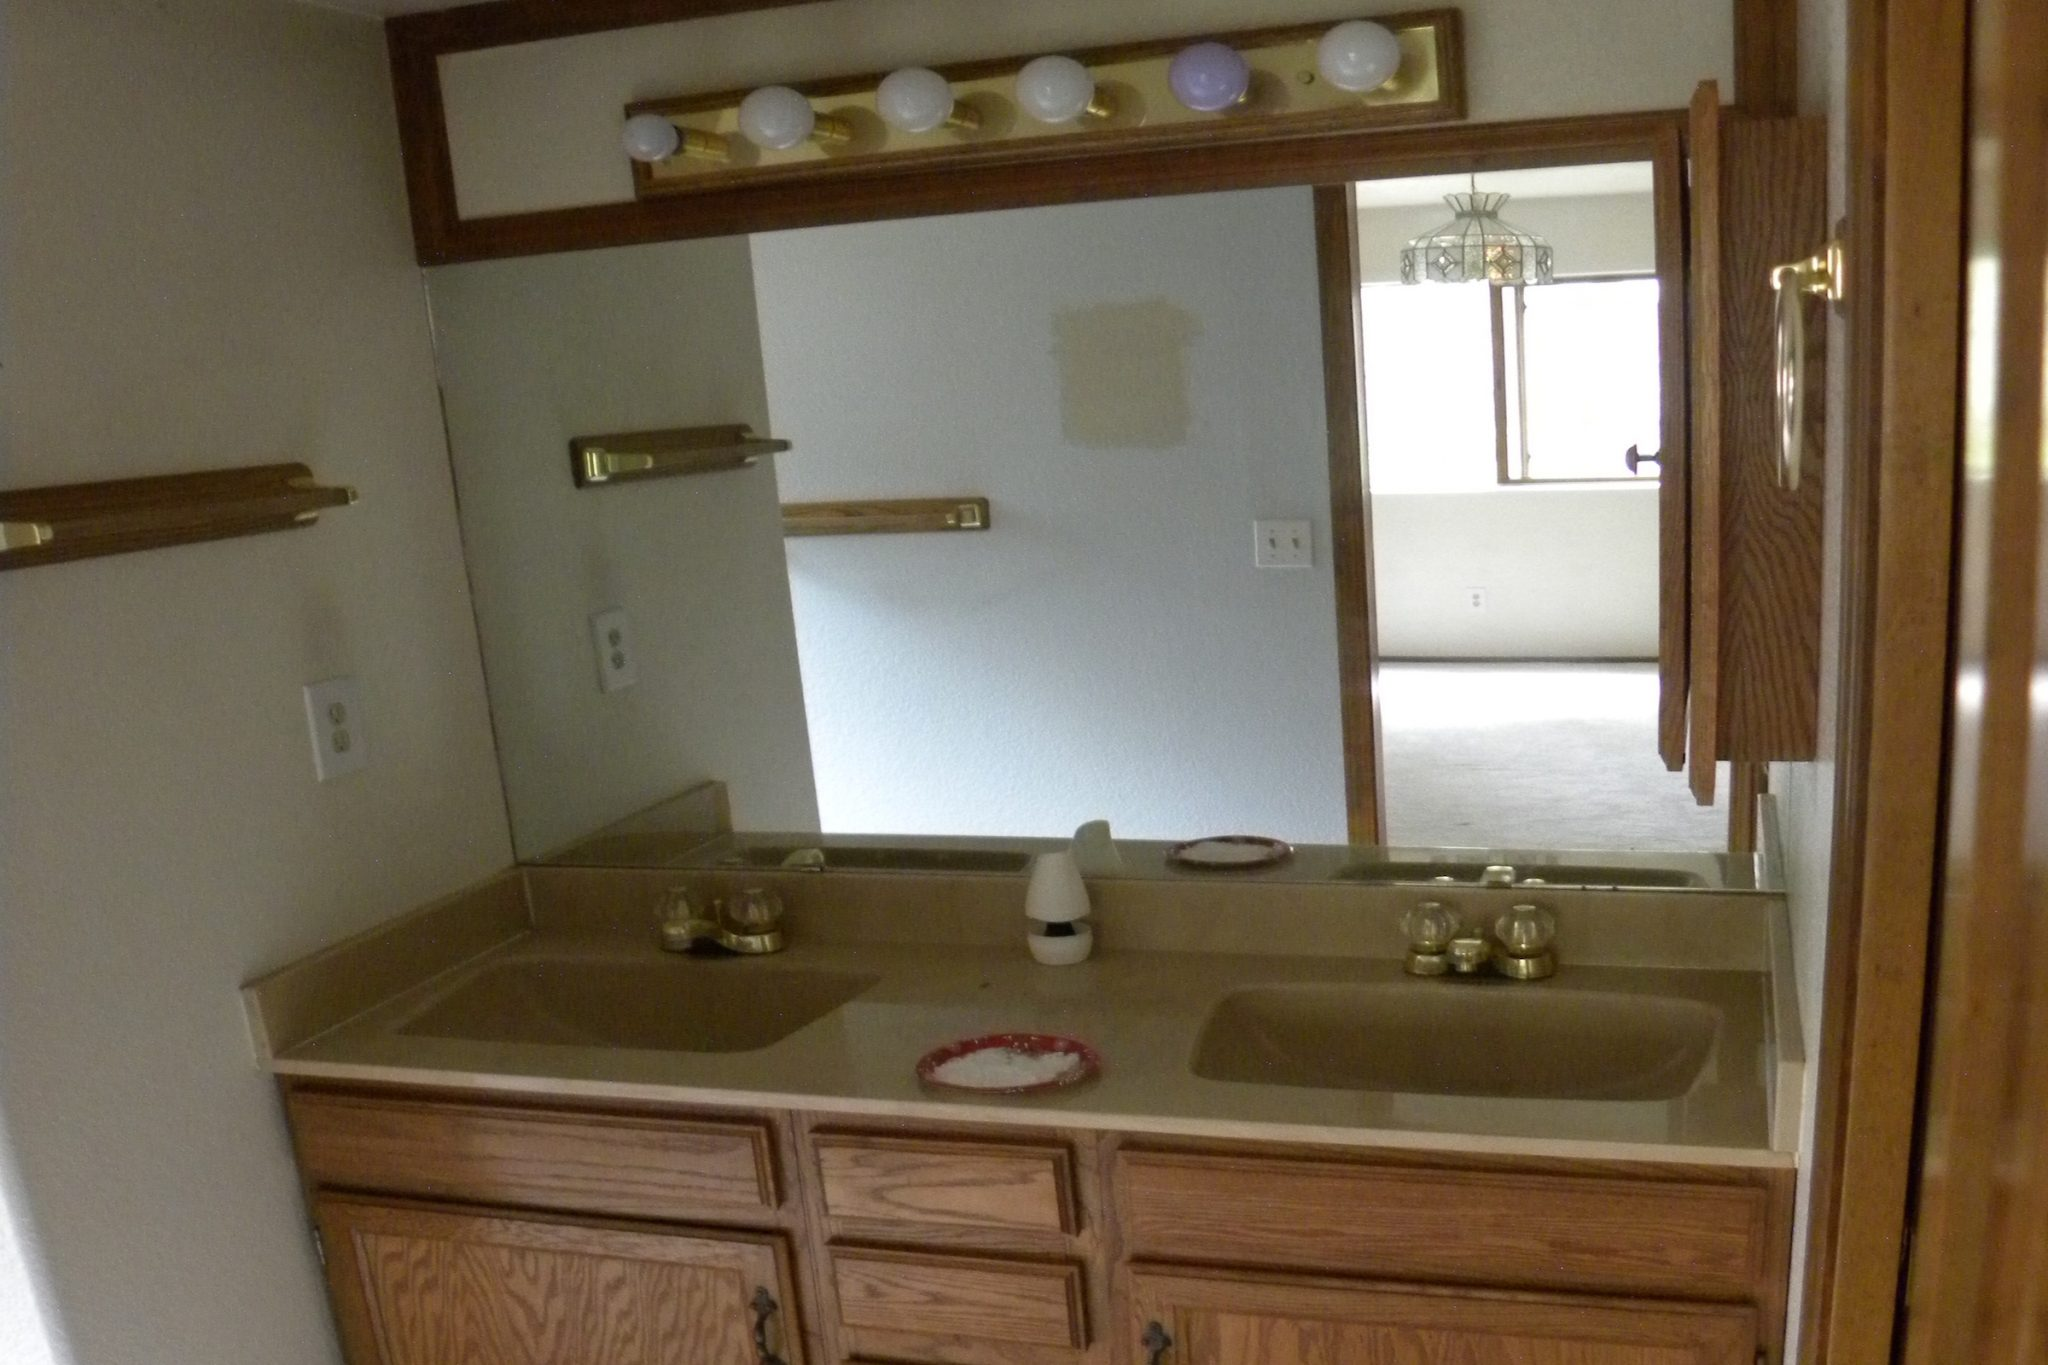 Interior shot of a residential bathroom ready to be renovated